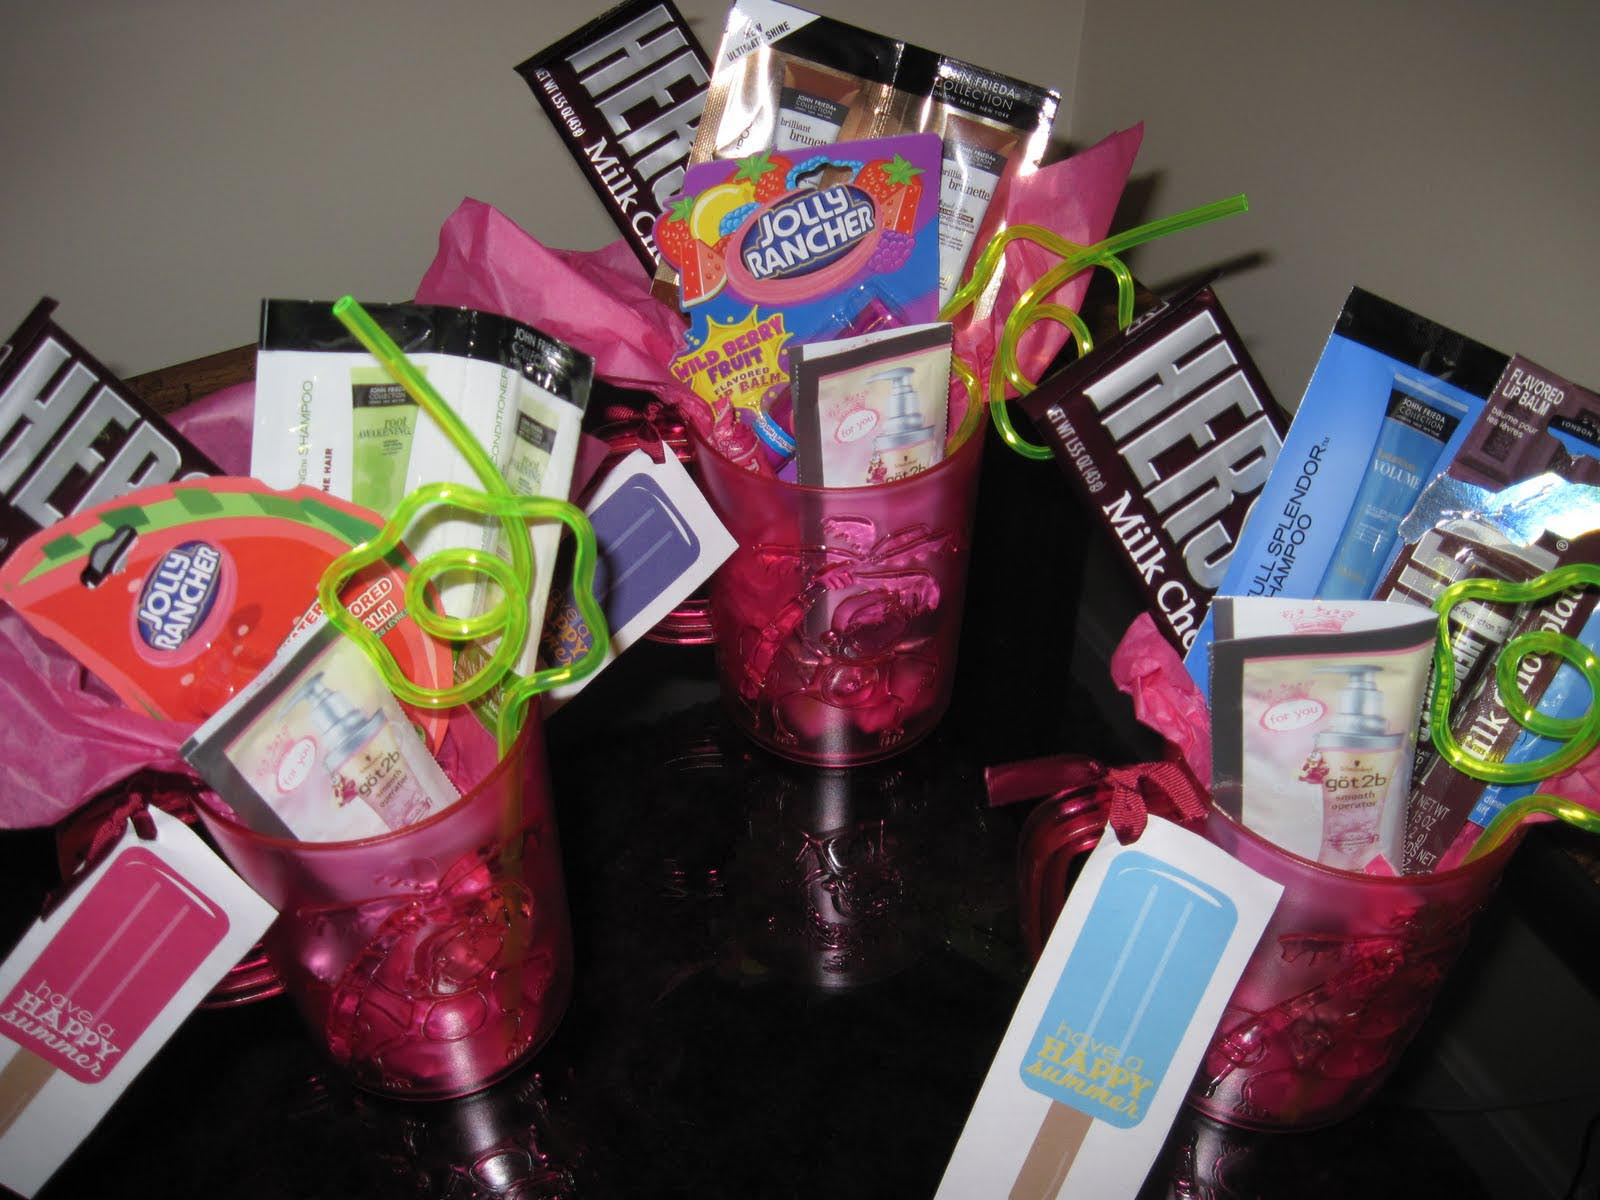 Kids Party Favors Are Easy To Find Cose You Know What